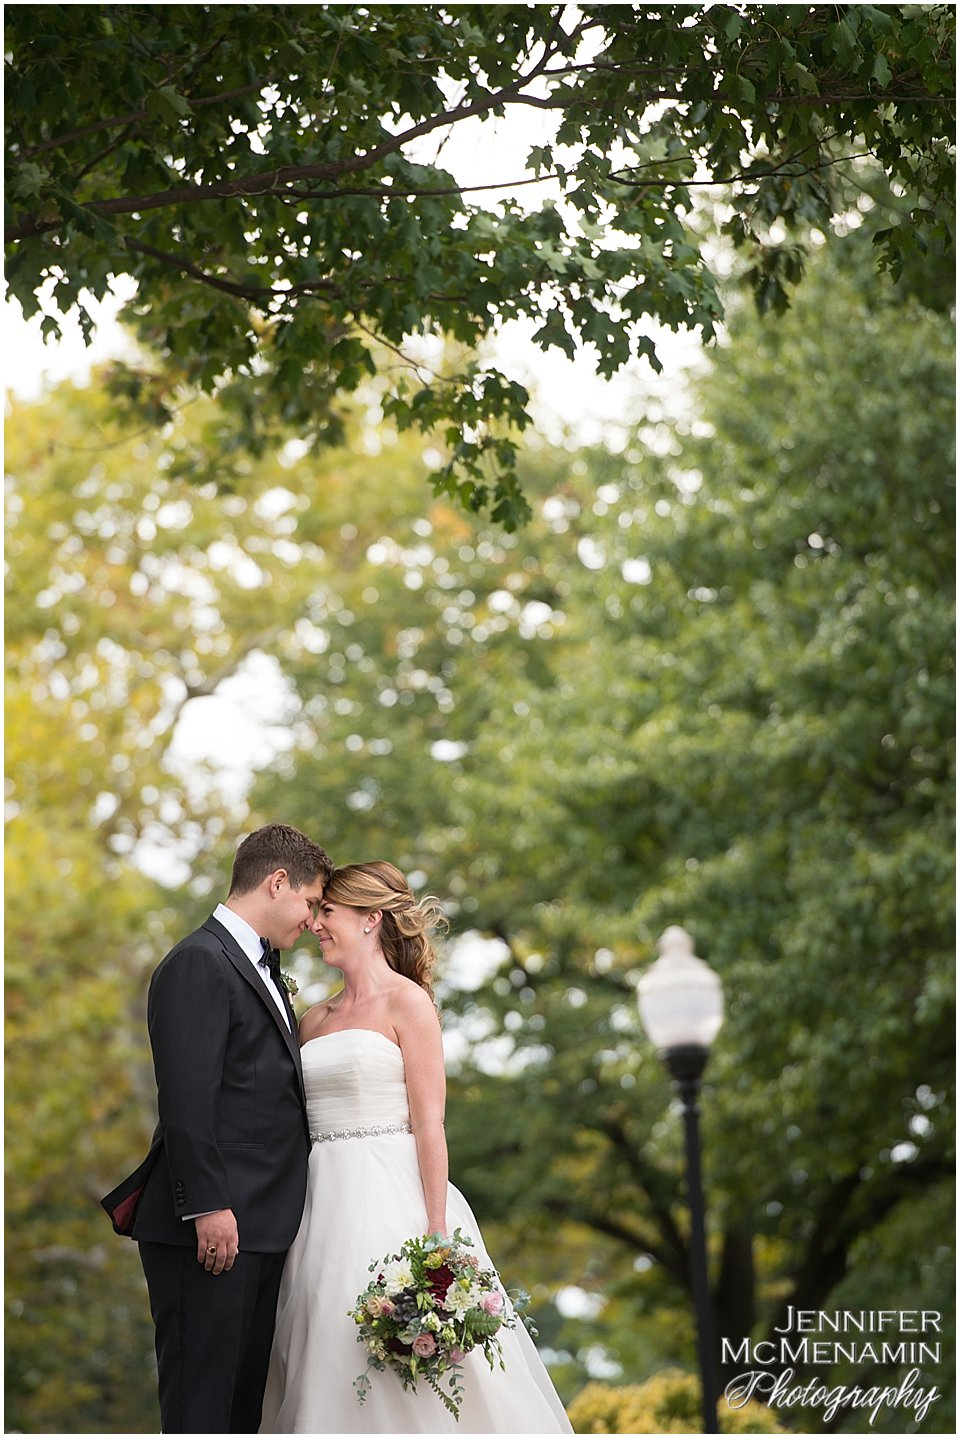 011-BergeronBarker_00658_Jennifer-McMenamin-Photography-AVAM-wedding-Baltimore-wedding-photographer